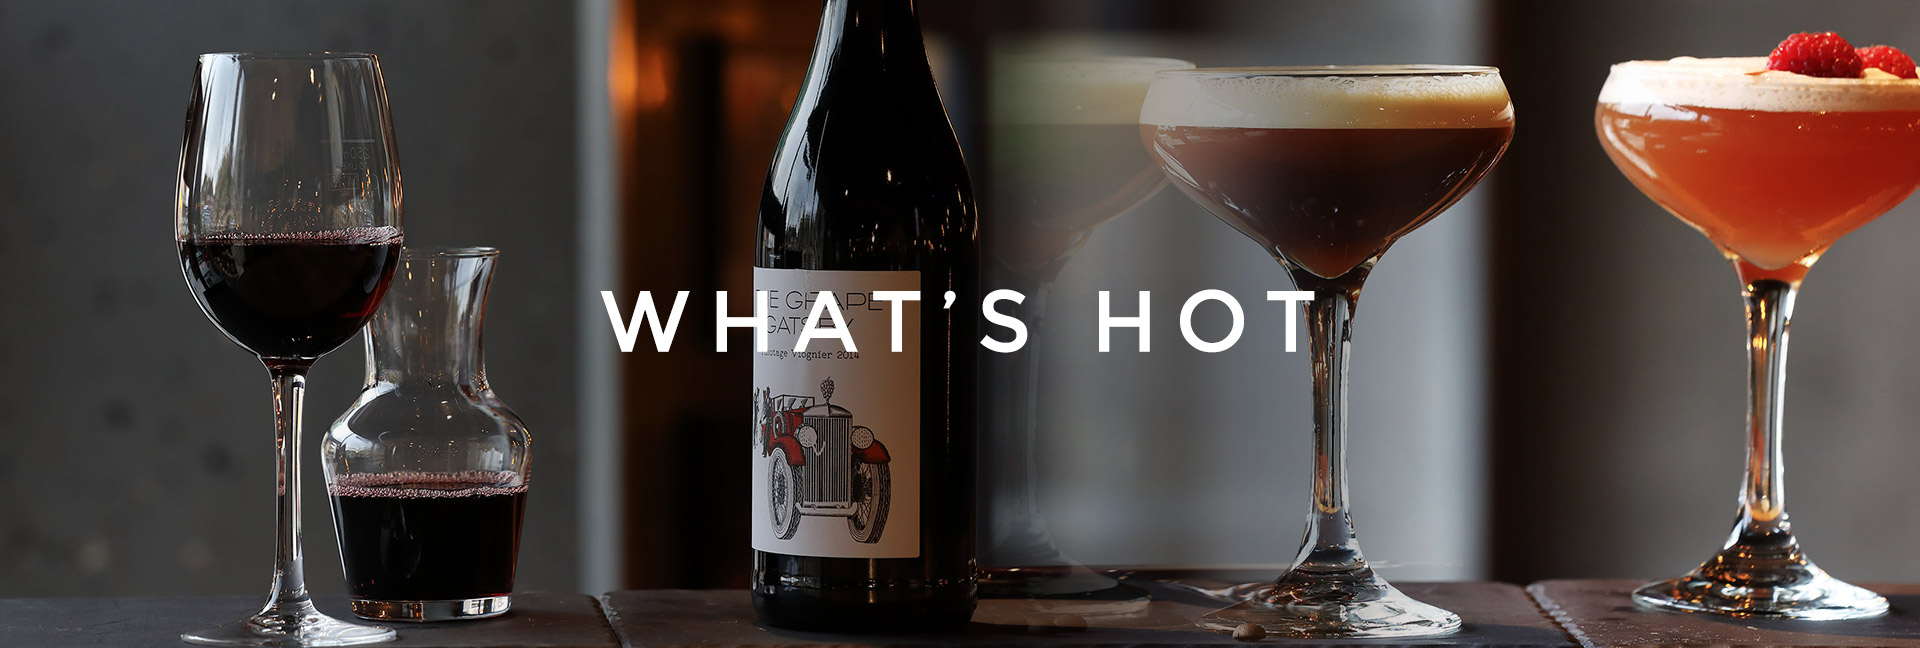 What's Hot at All Bar One Victoria